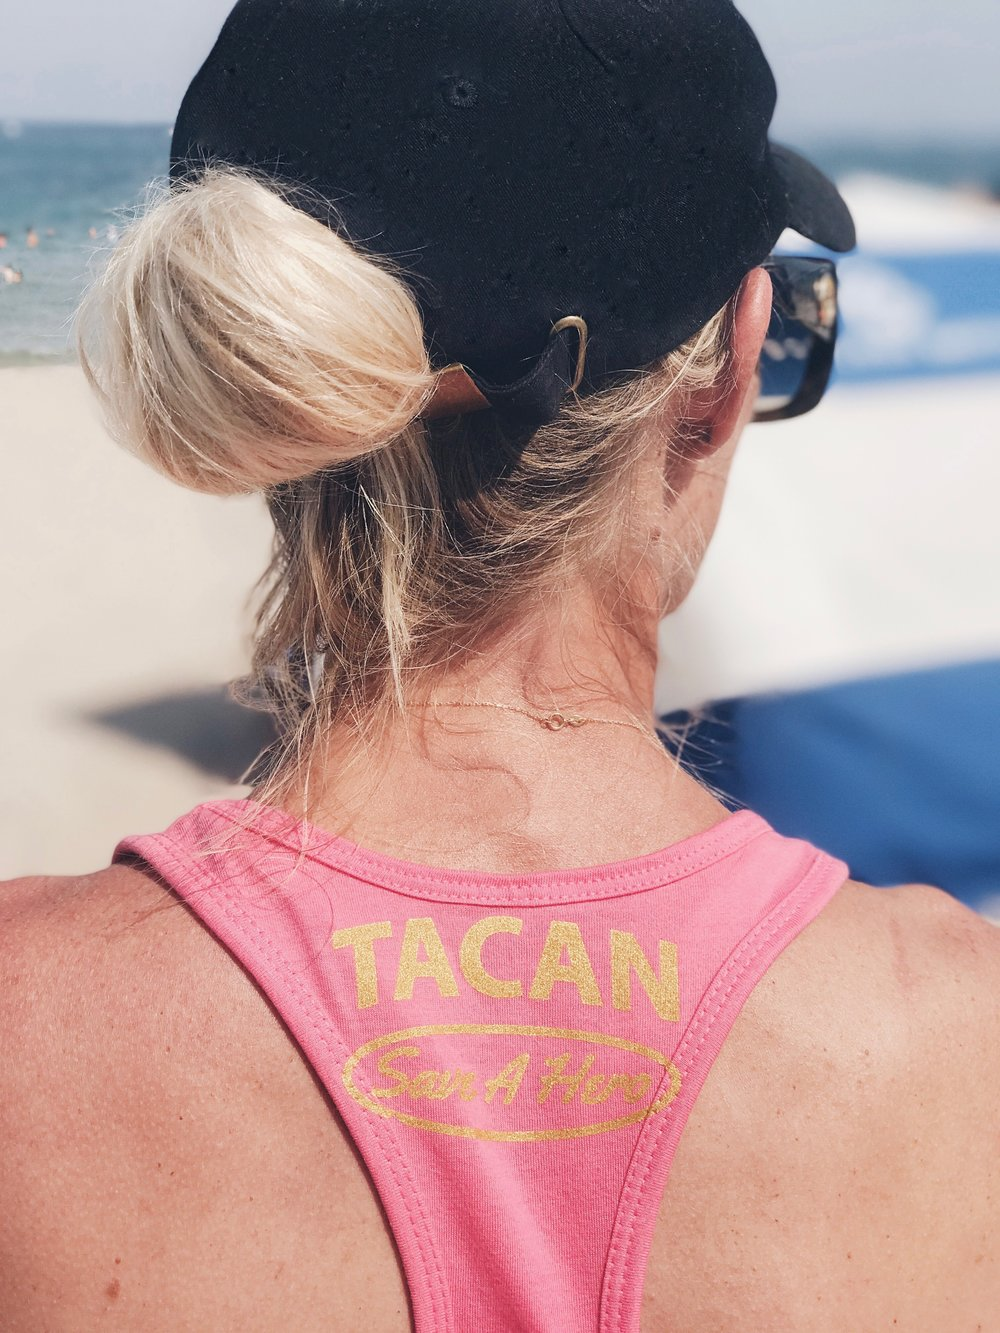 VISIT TACAN CLOTHING ONLINE  HERE  AND HELP SAVE A HERO!